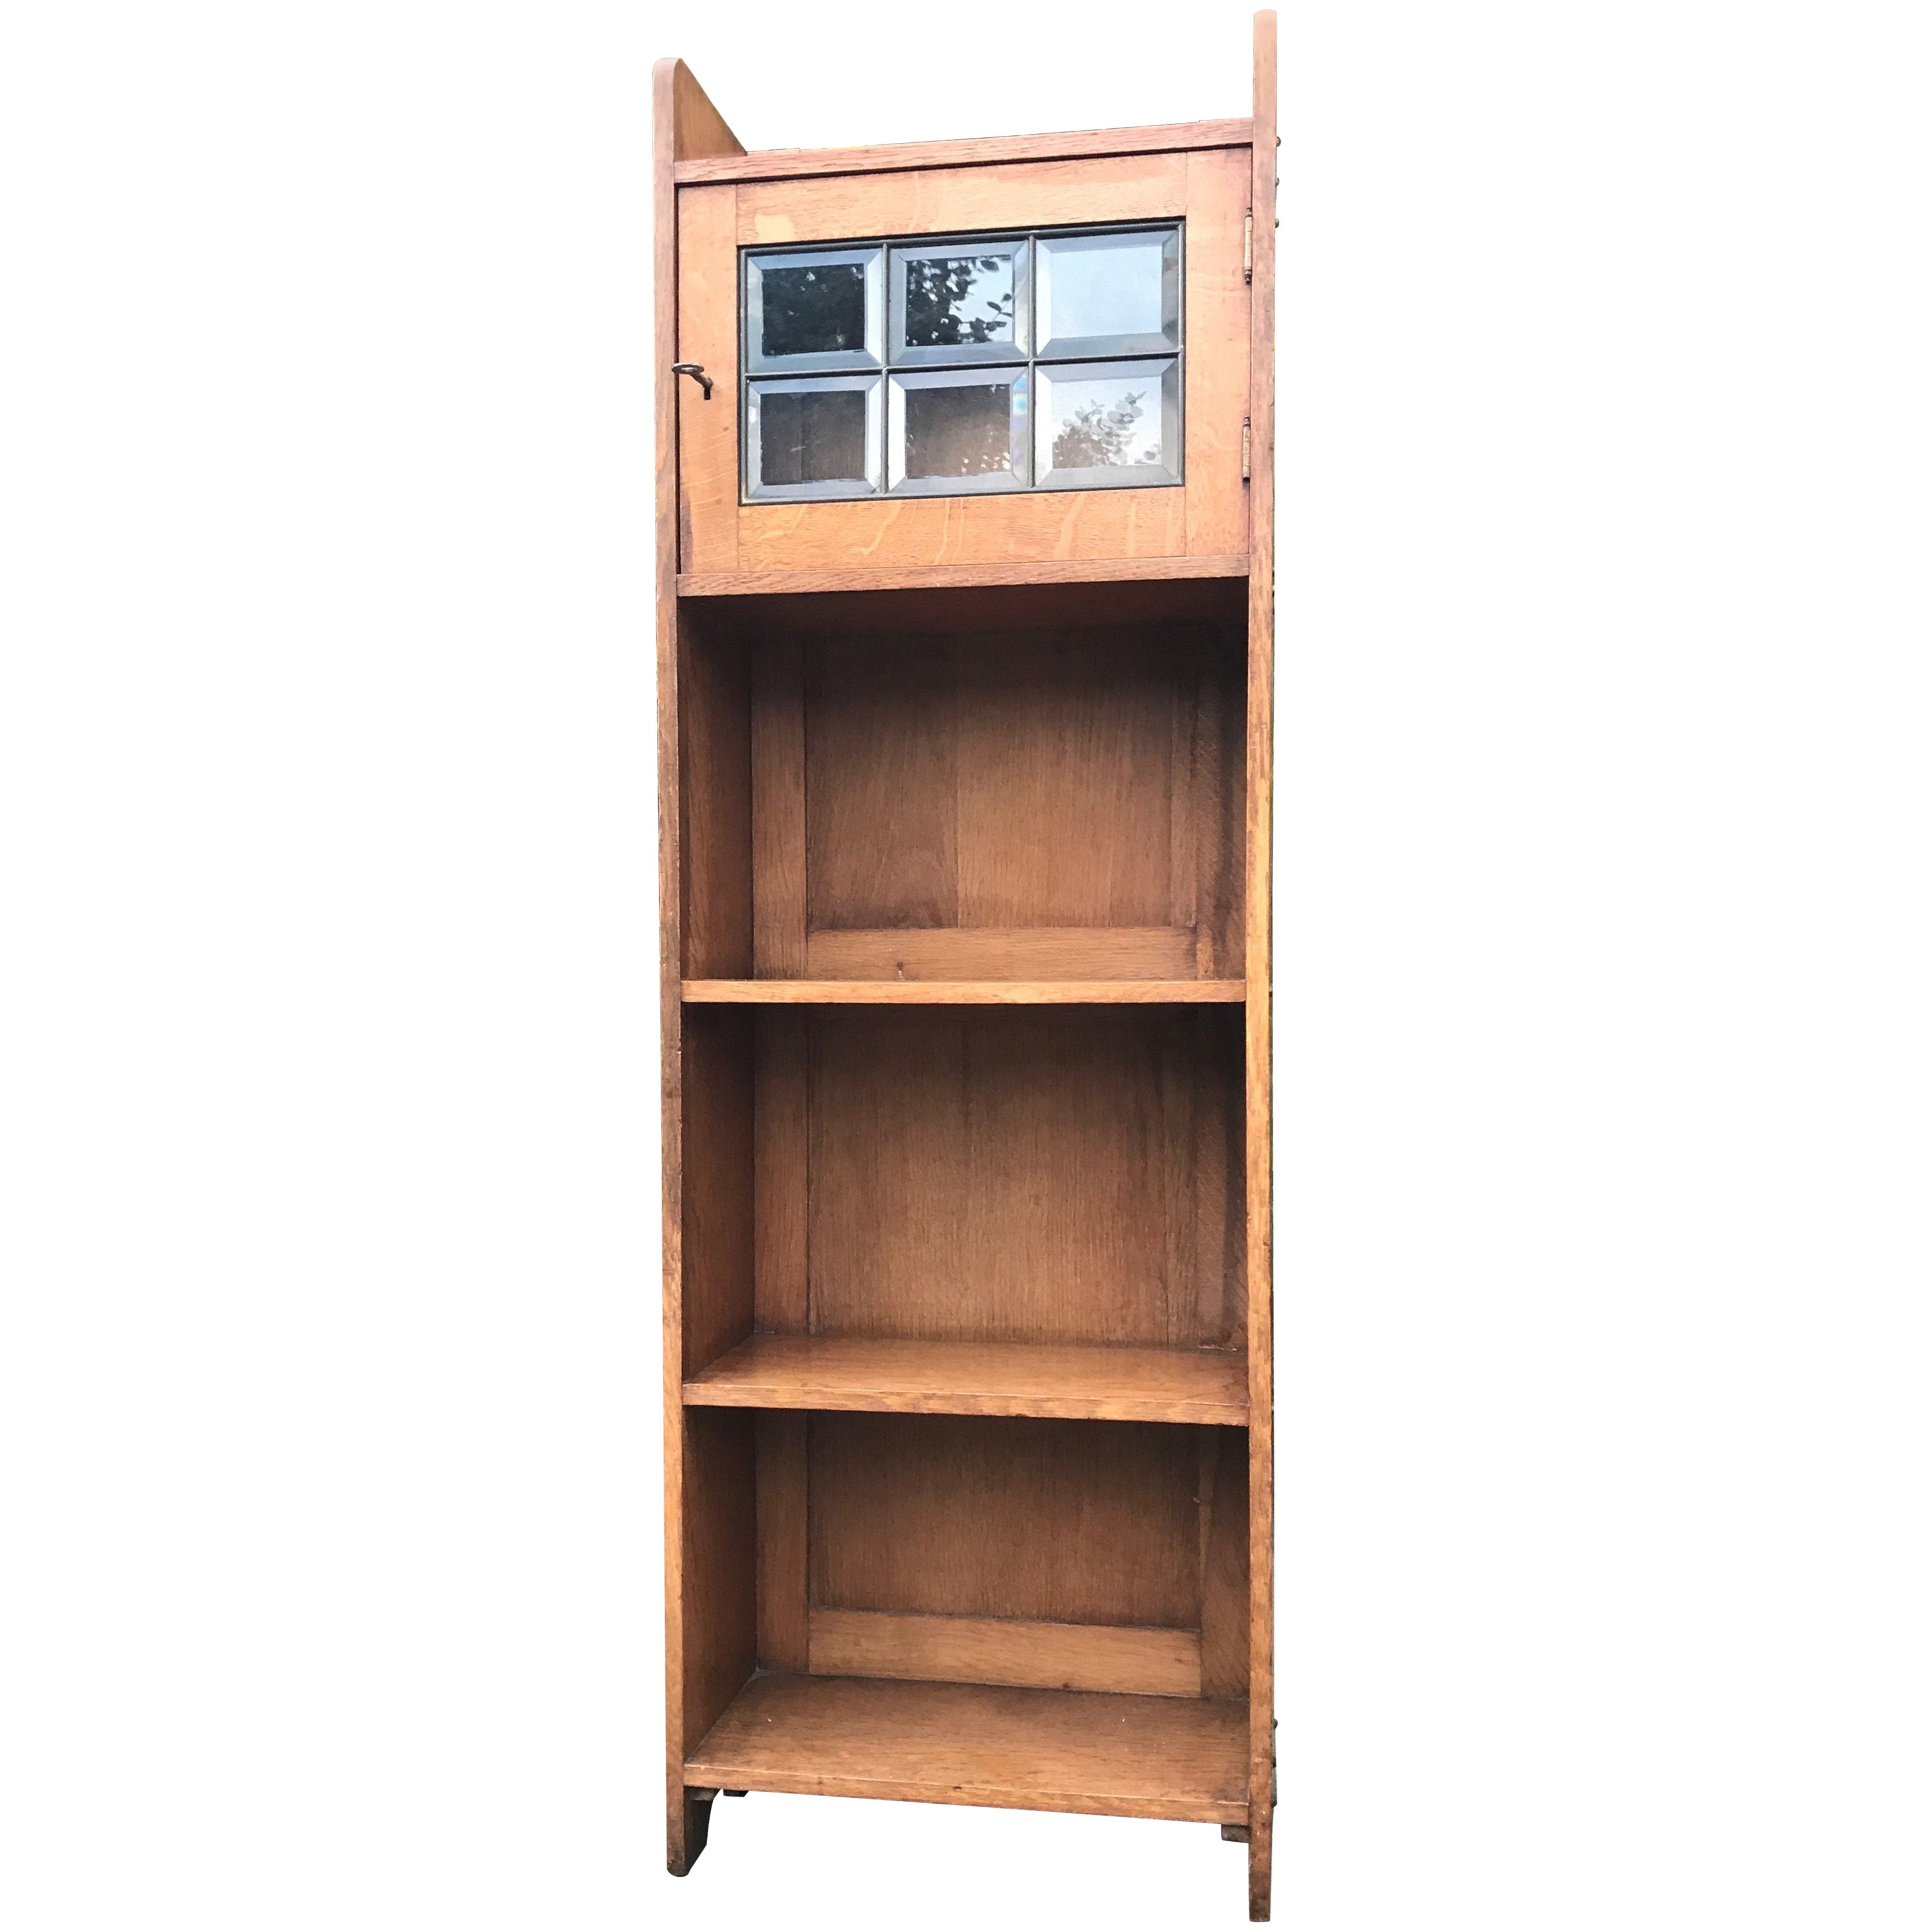 Practical Size Solid Oak Arts and Crafts Antique Bookcase with Beveled Glass